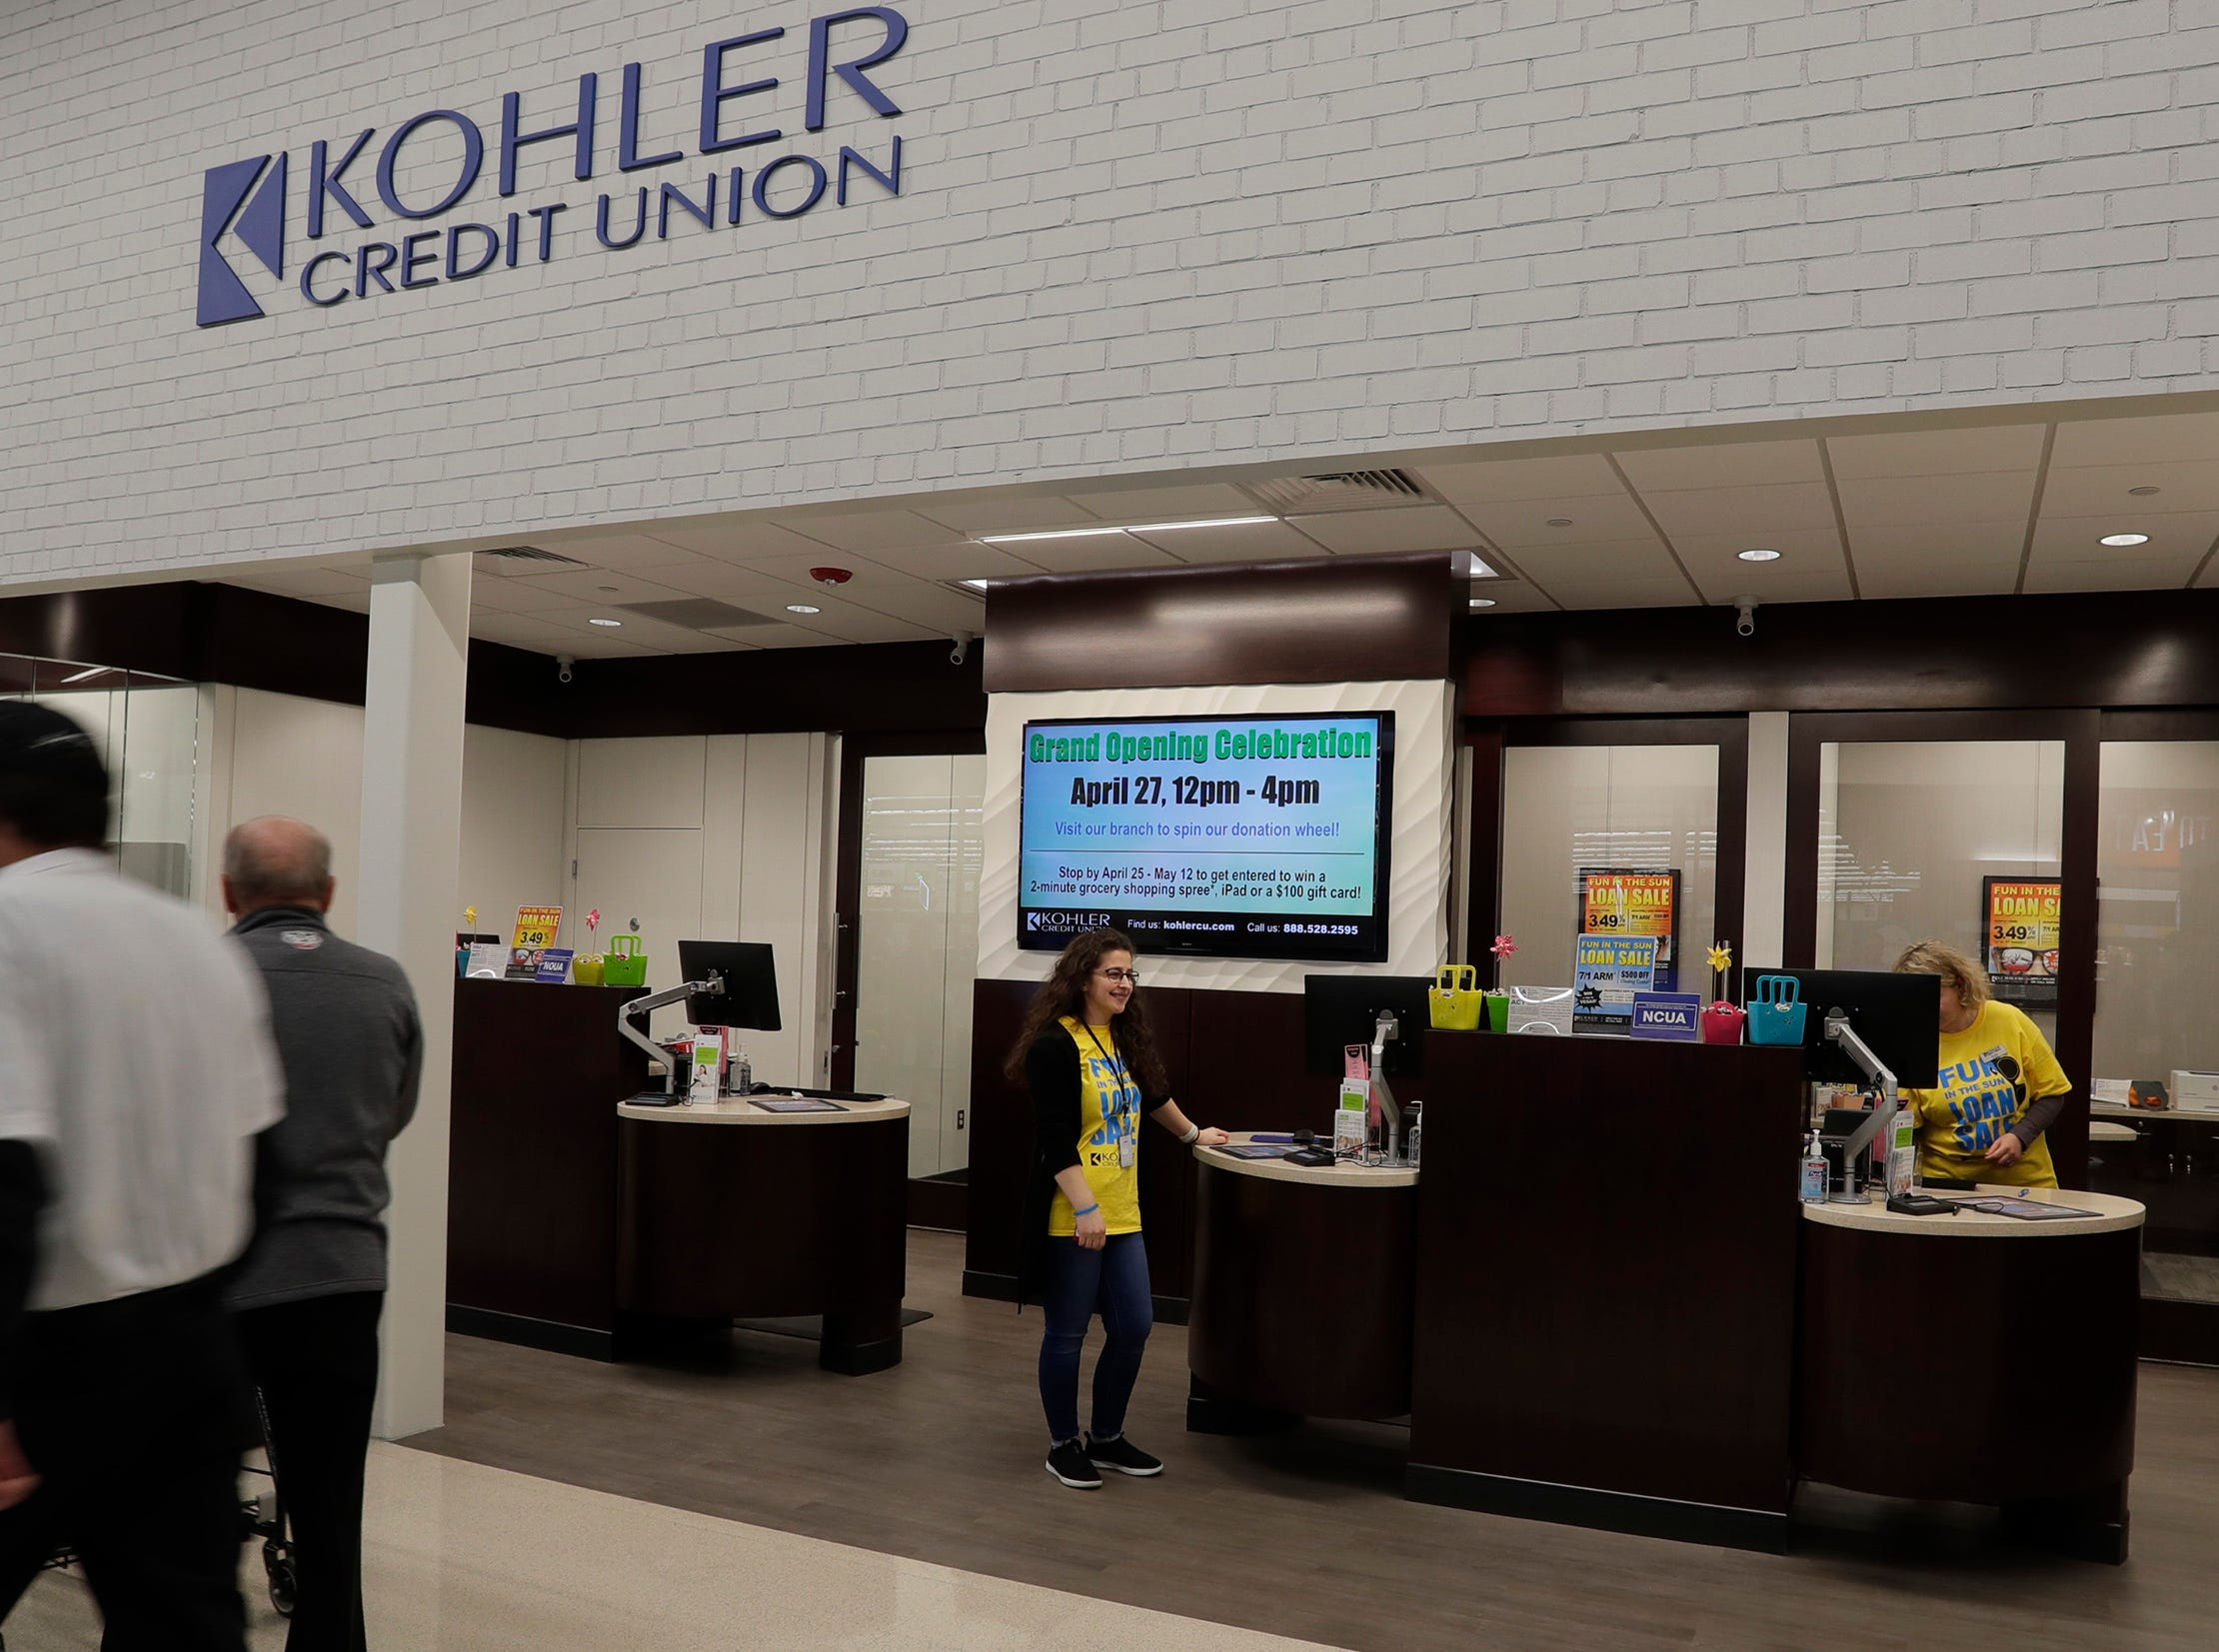 Kohler Credit Union has opened a branch at Meijer, Thursday April 25, 2019, in Sheboygan, Wis. The 155,000-square-foot supercenter has 300 employees on opening day.